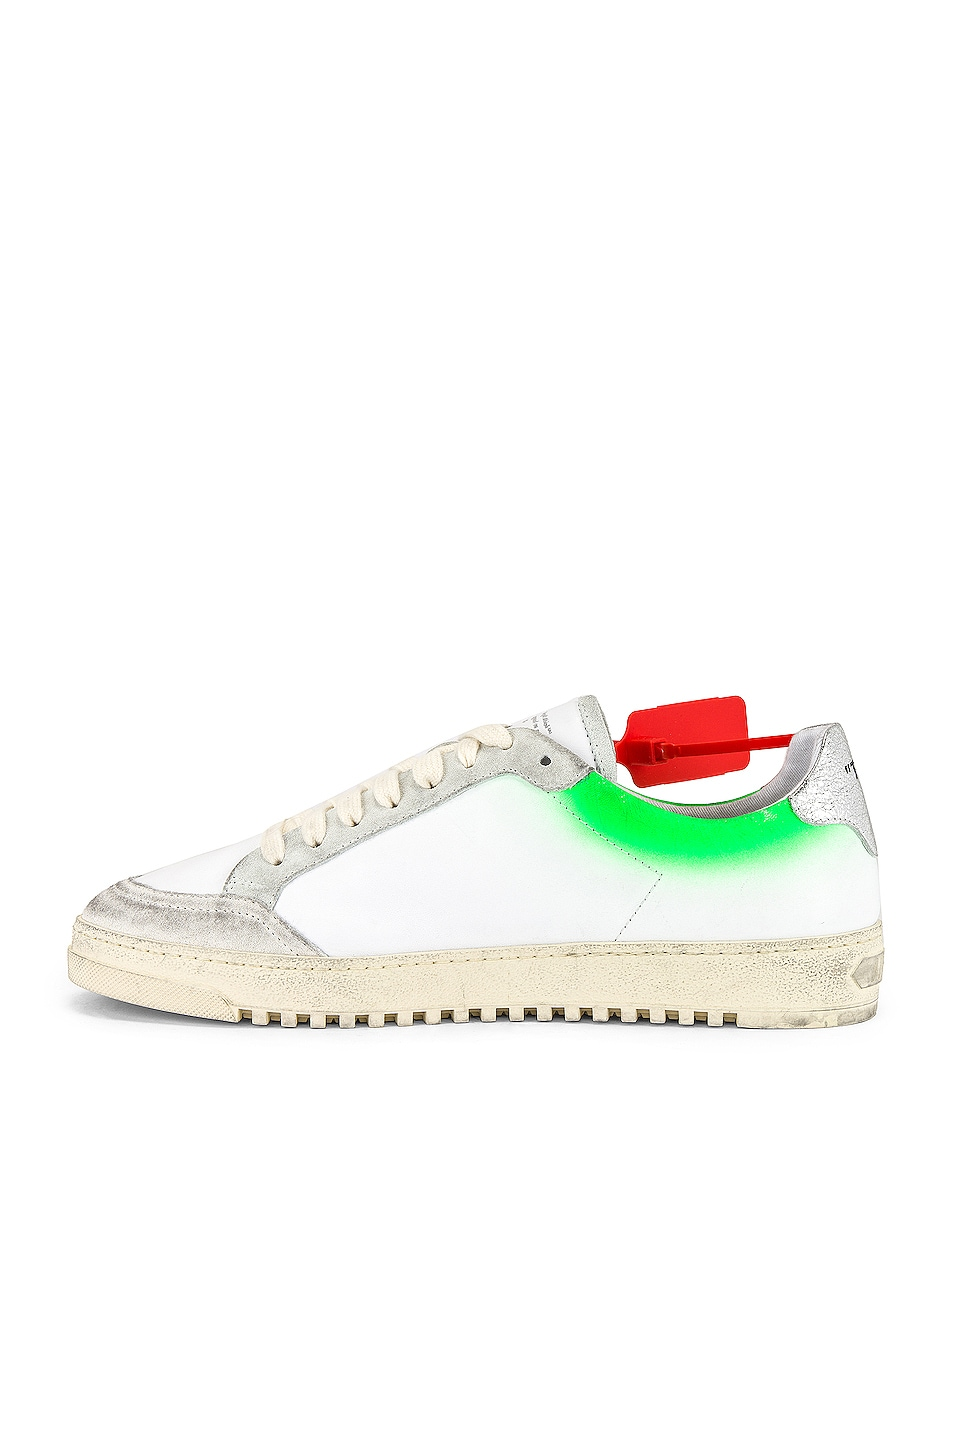 Image 5 of OFF-WHITE 2.0 Sneaker in White & Green